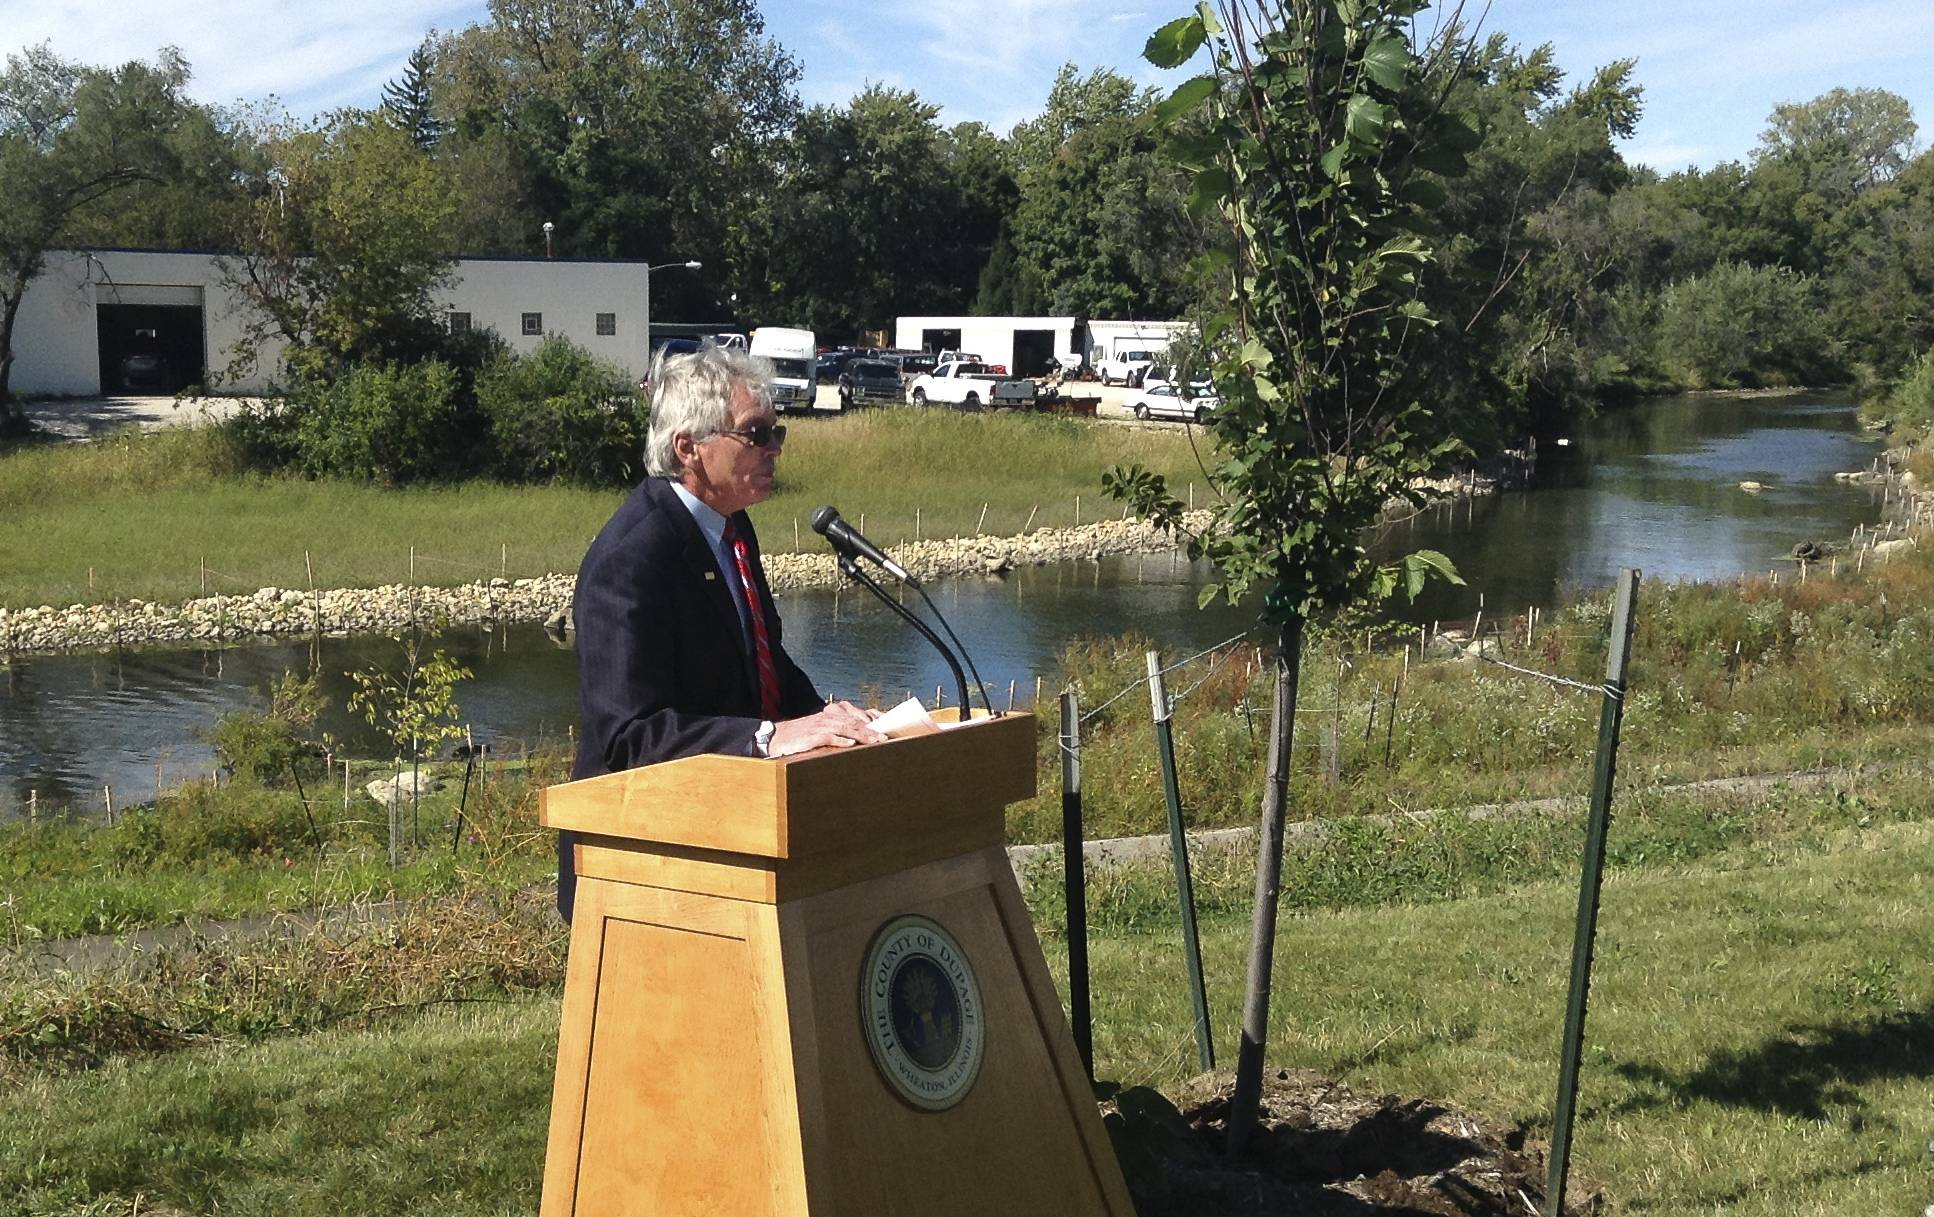 Warrenville Mayor David Brummel says a series of flood control and water quality improvement projects along the West Branch of the DuPage River will benefit residents in the community for decades to come.